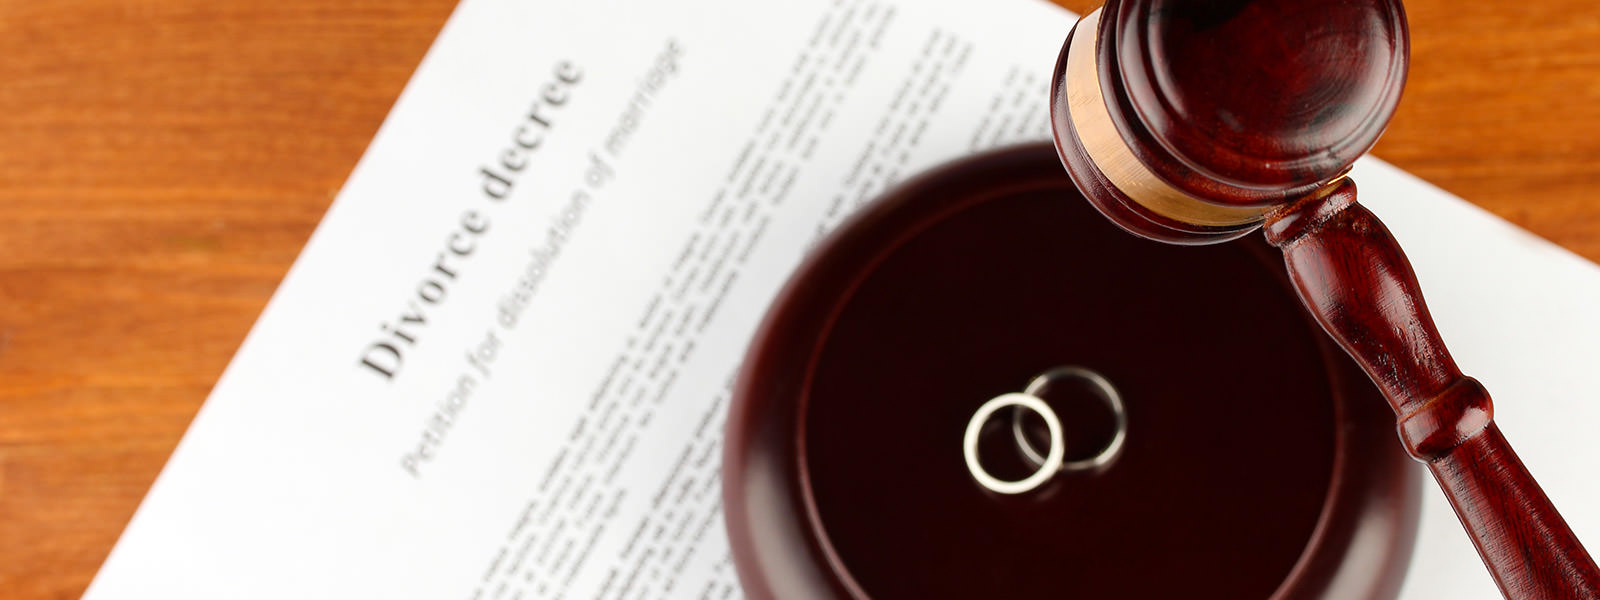 Divorce is One Chapter Ending As Another Begins